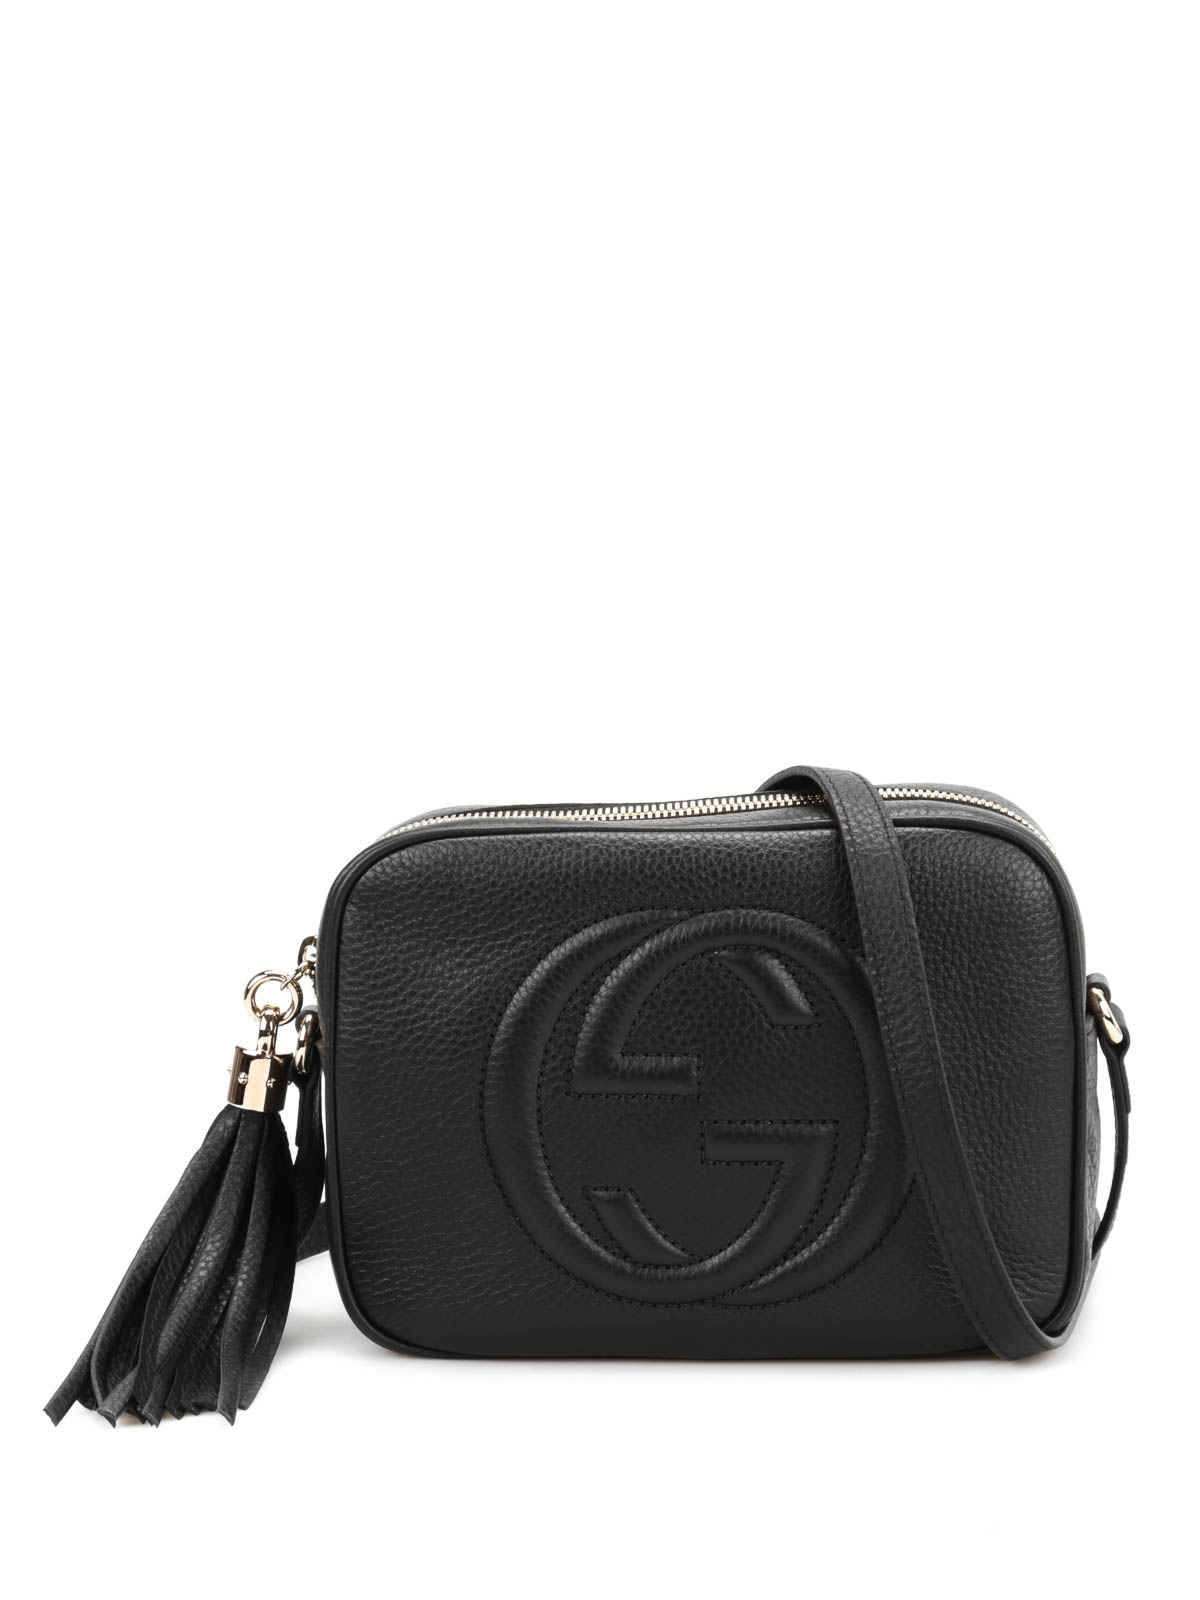 gucci soho leather disco bag cross body bags 308364 a7m0g 1000. Black Bedroom Furniture Sets. Home Design Ideas